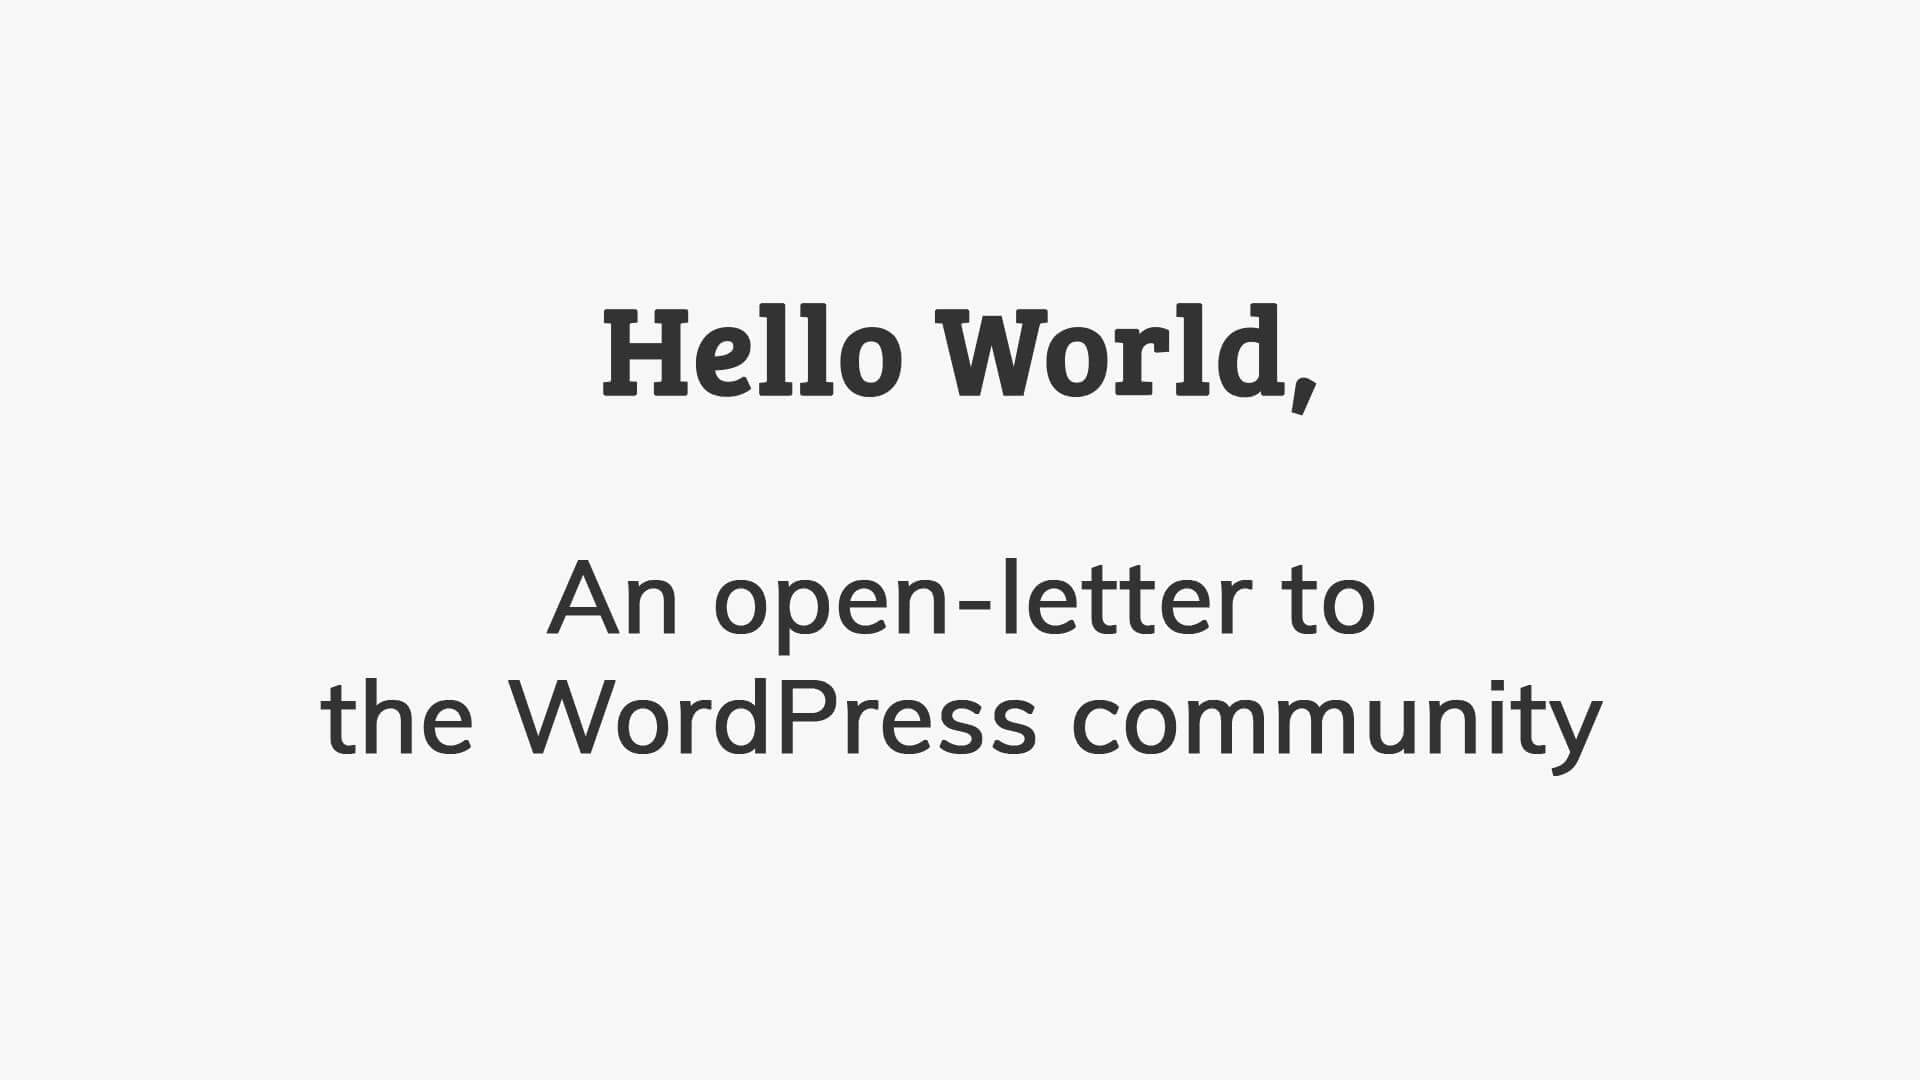 An open letter to the WordPress community